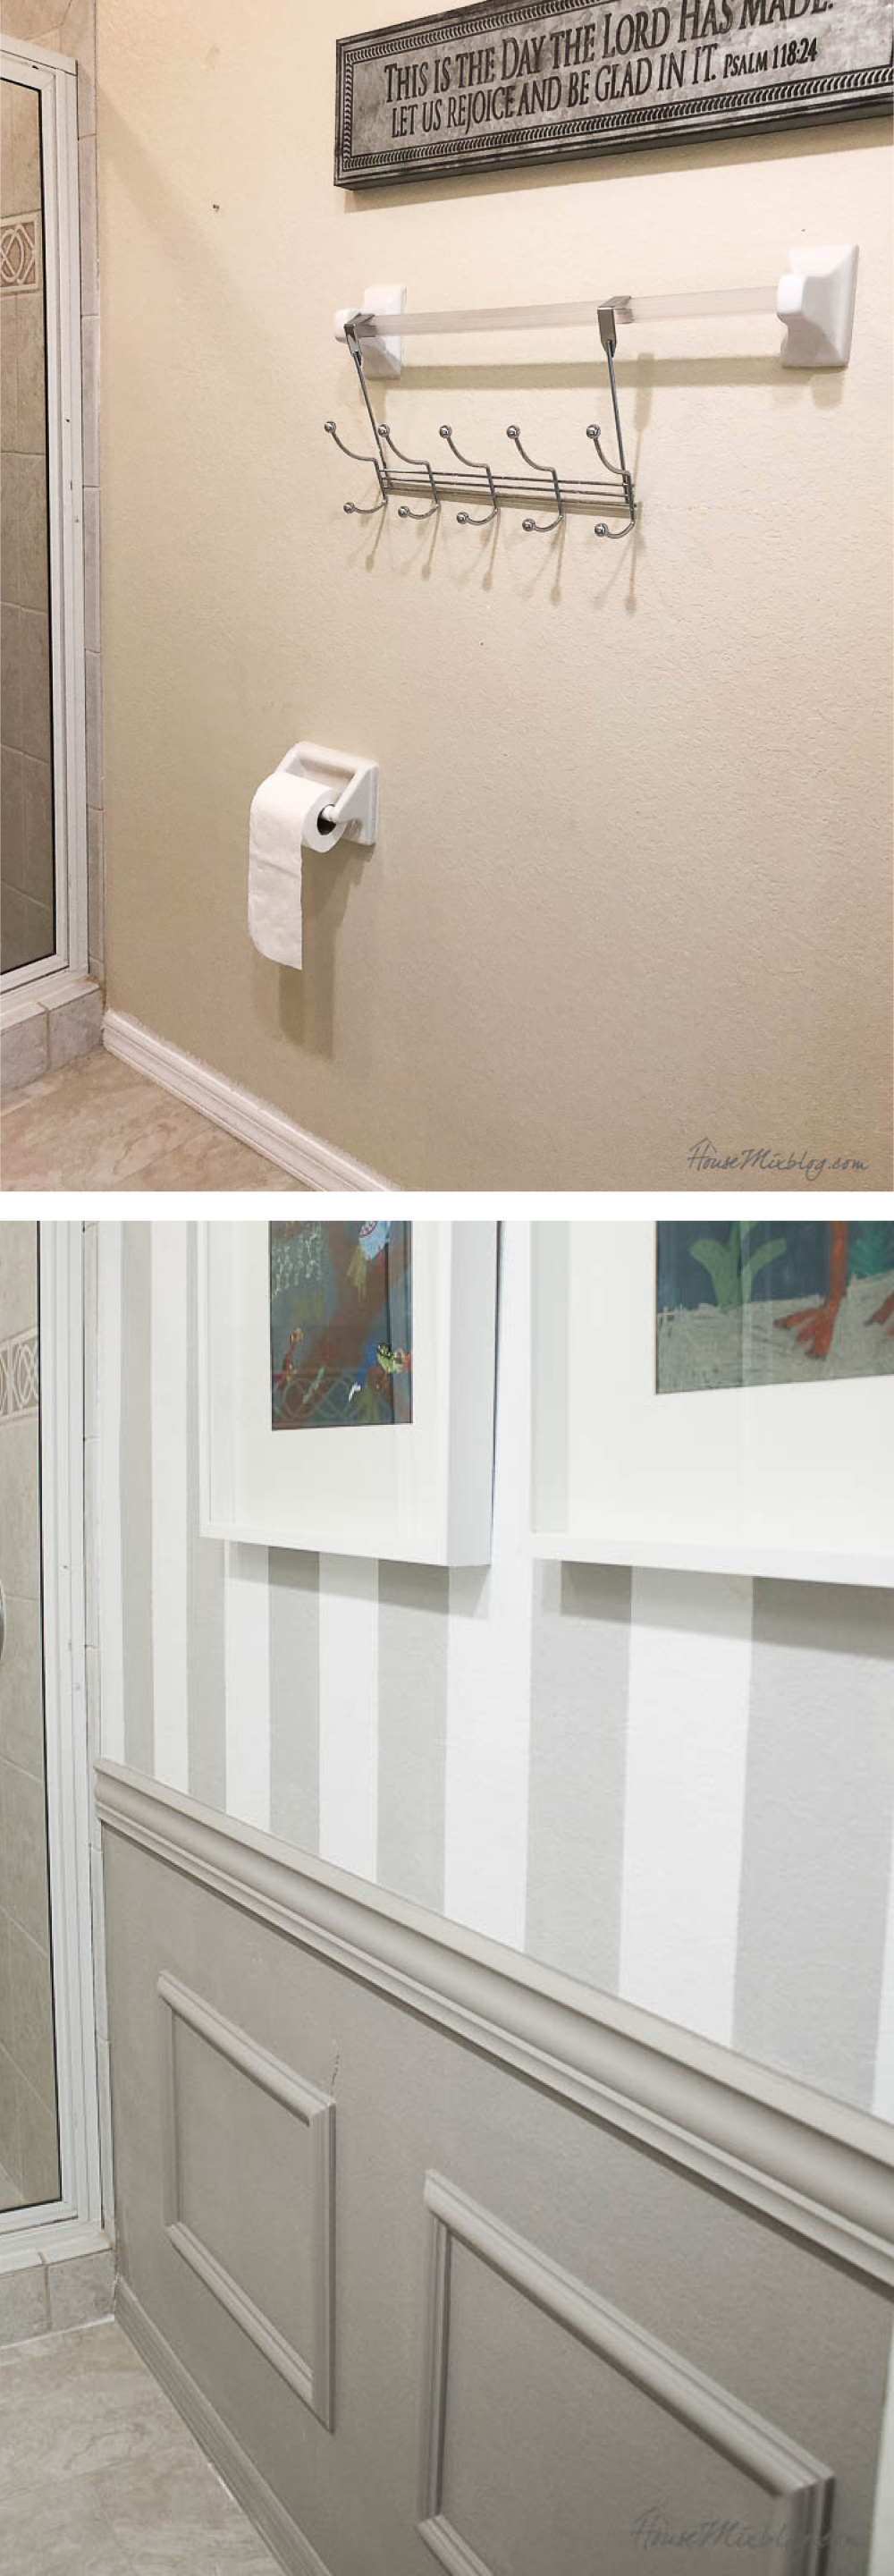 Before and after - the simplest wainscoting without power tools3